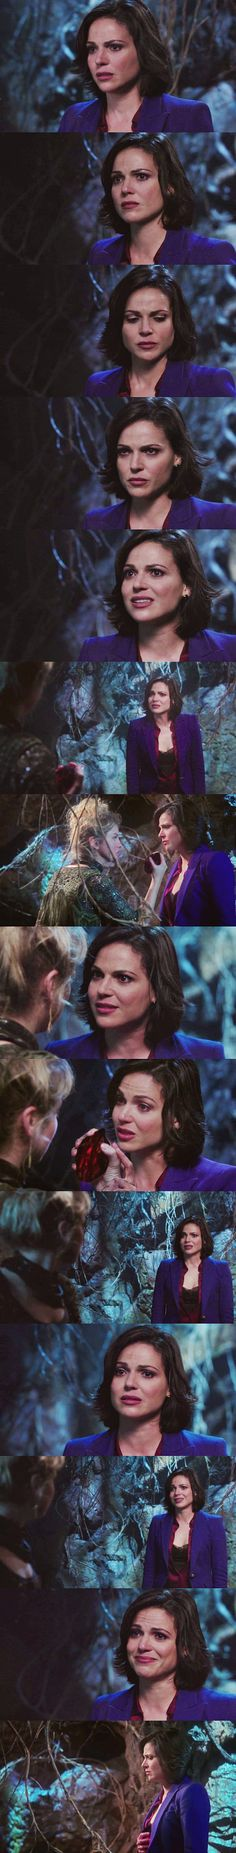 No subtitles needed.  All the awards to Lana.  Lana Parrilla; Once Upon A Time